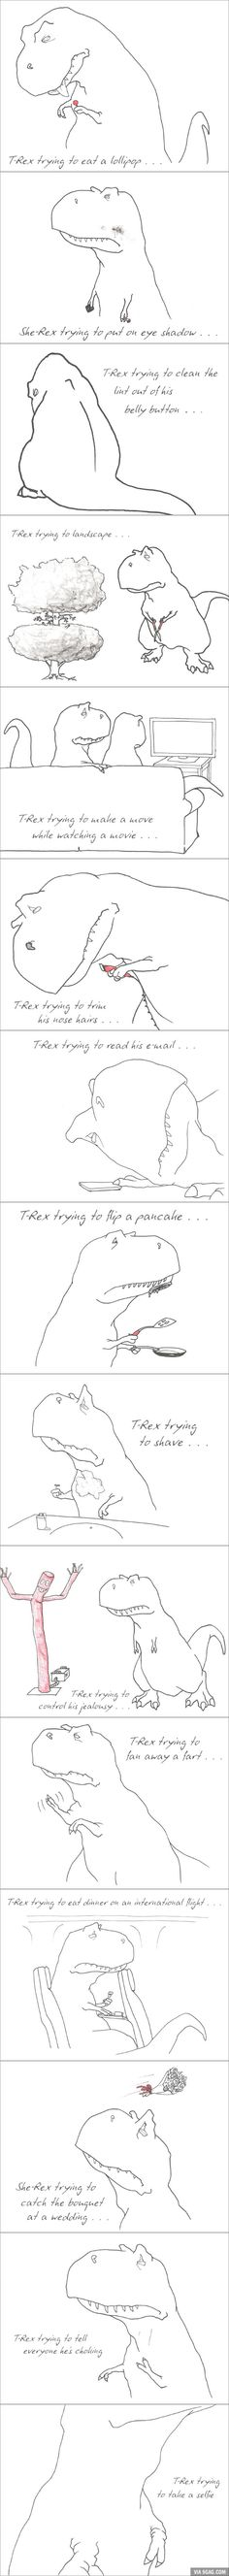 For anyone having a bad day, remember that the T-Rex has it worse